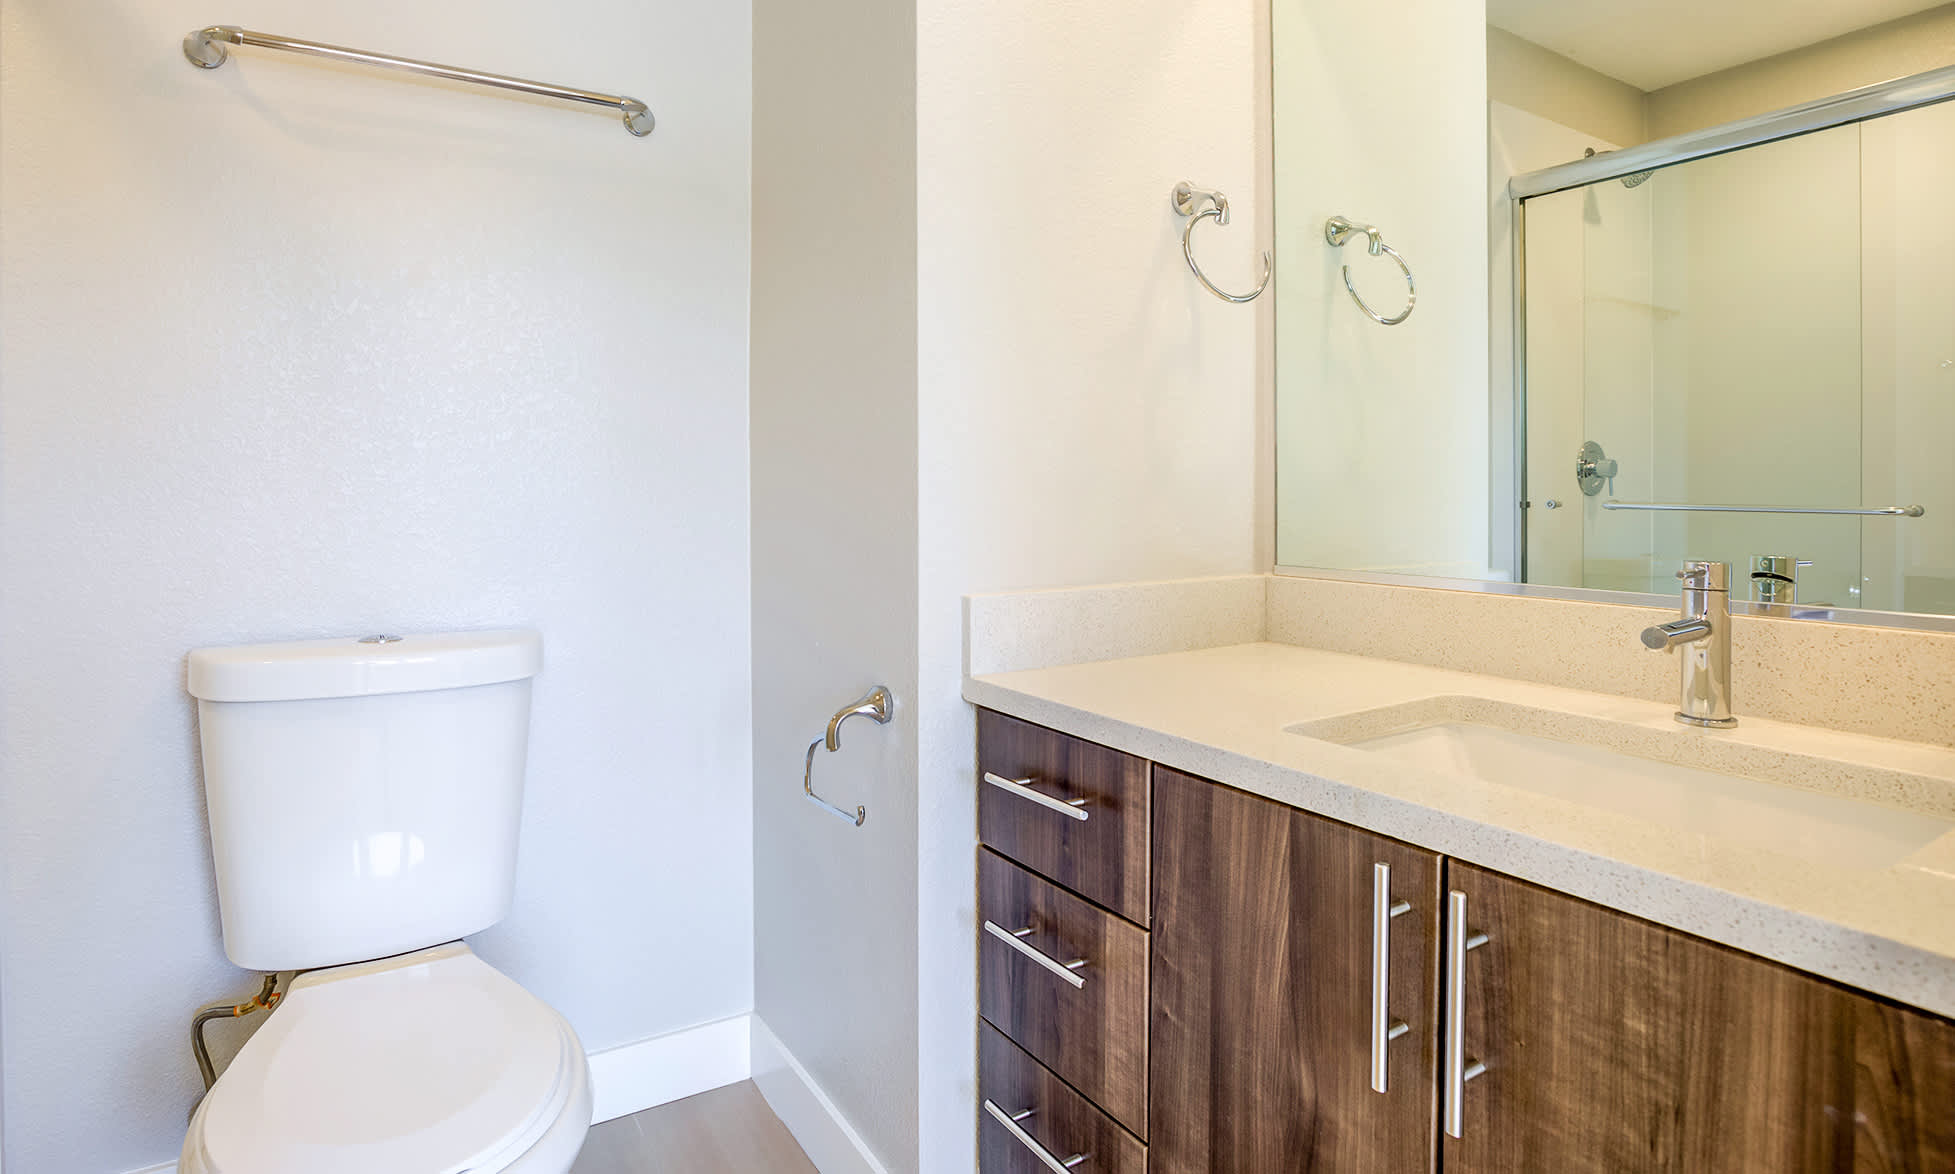 300 Granada Apartments apartments in Mountain View CA to rent photo 6